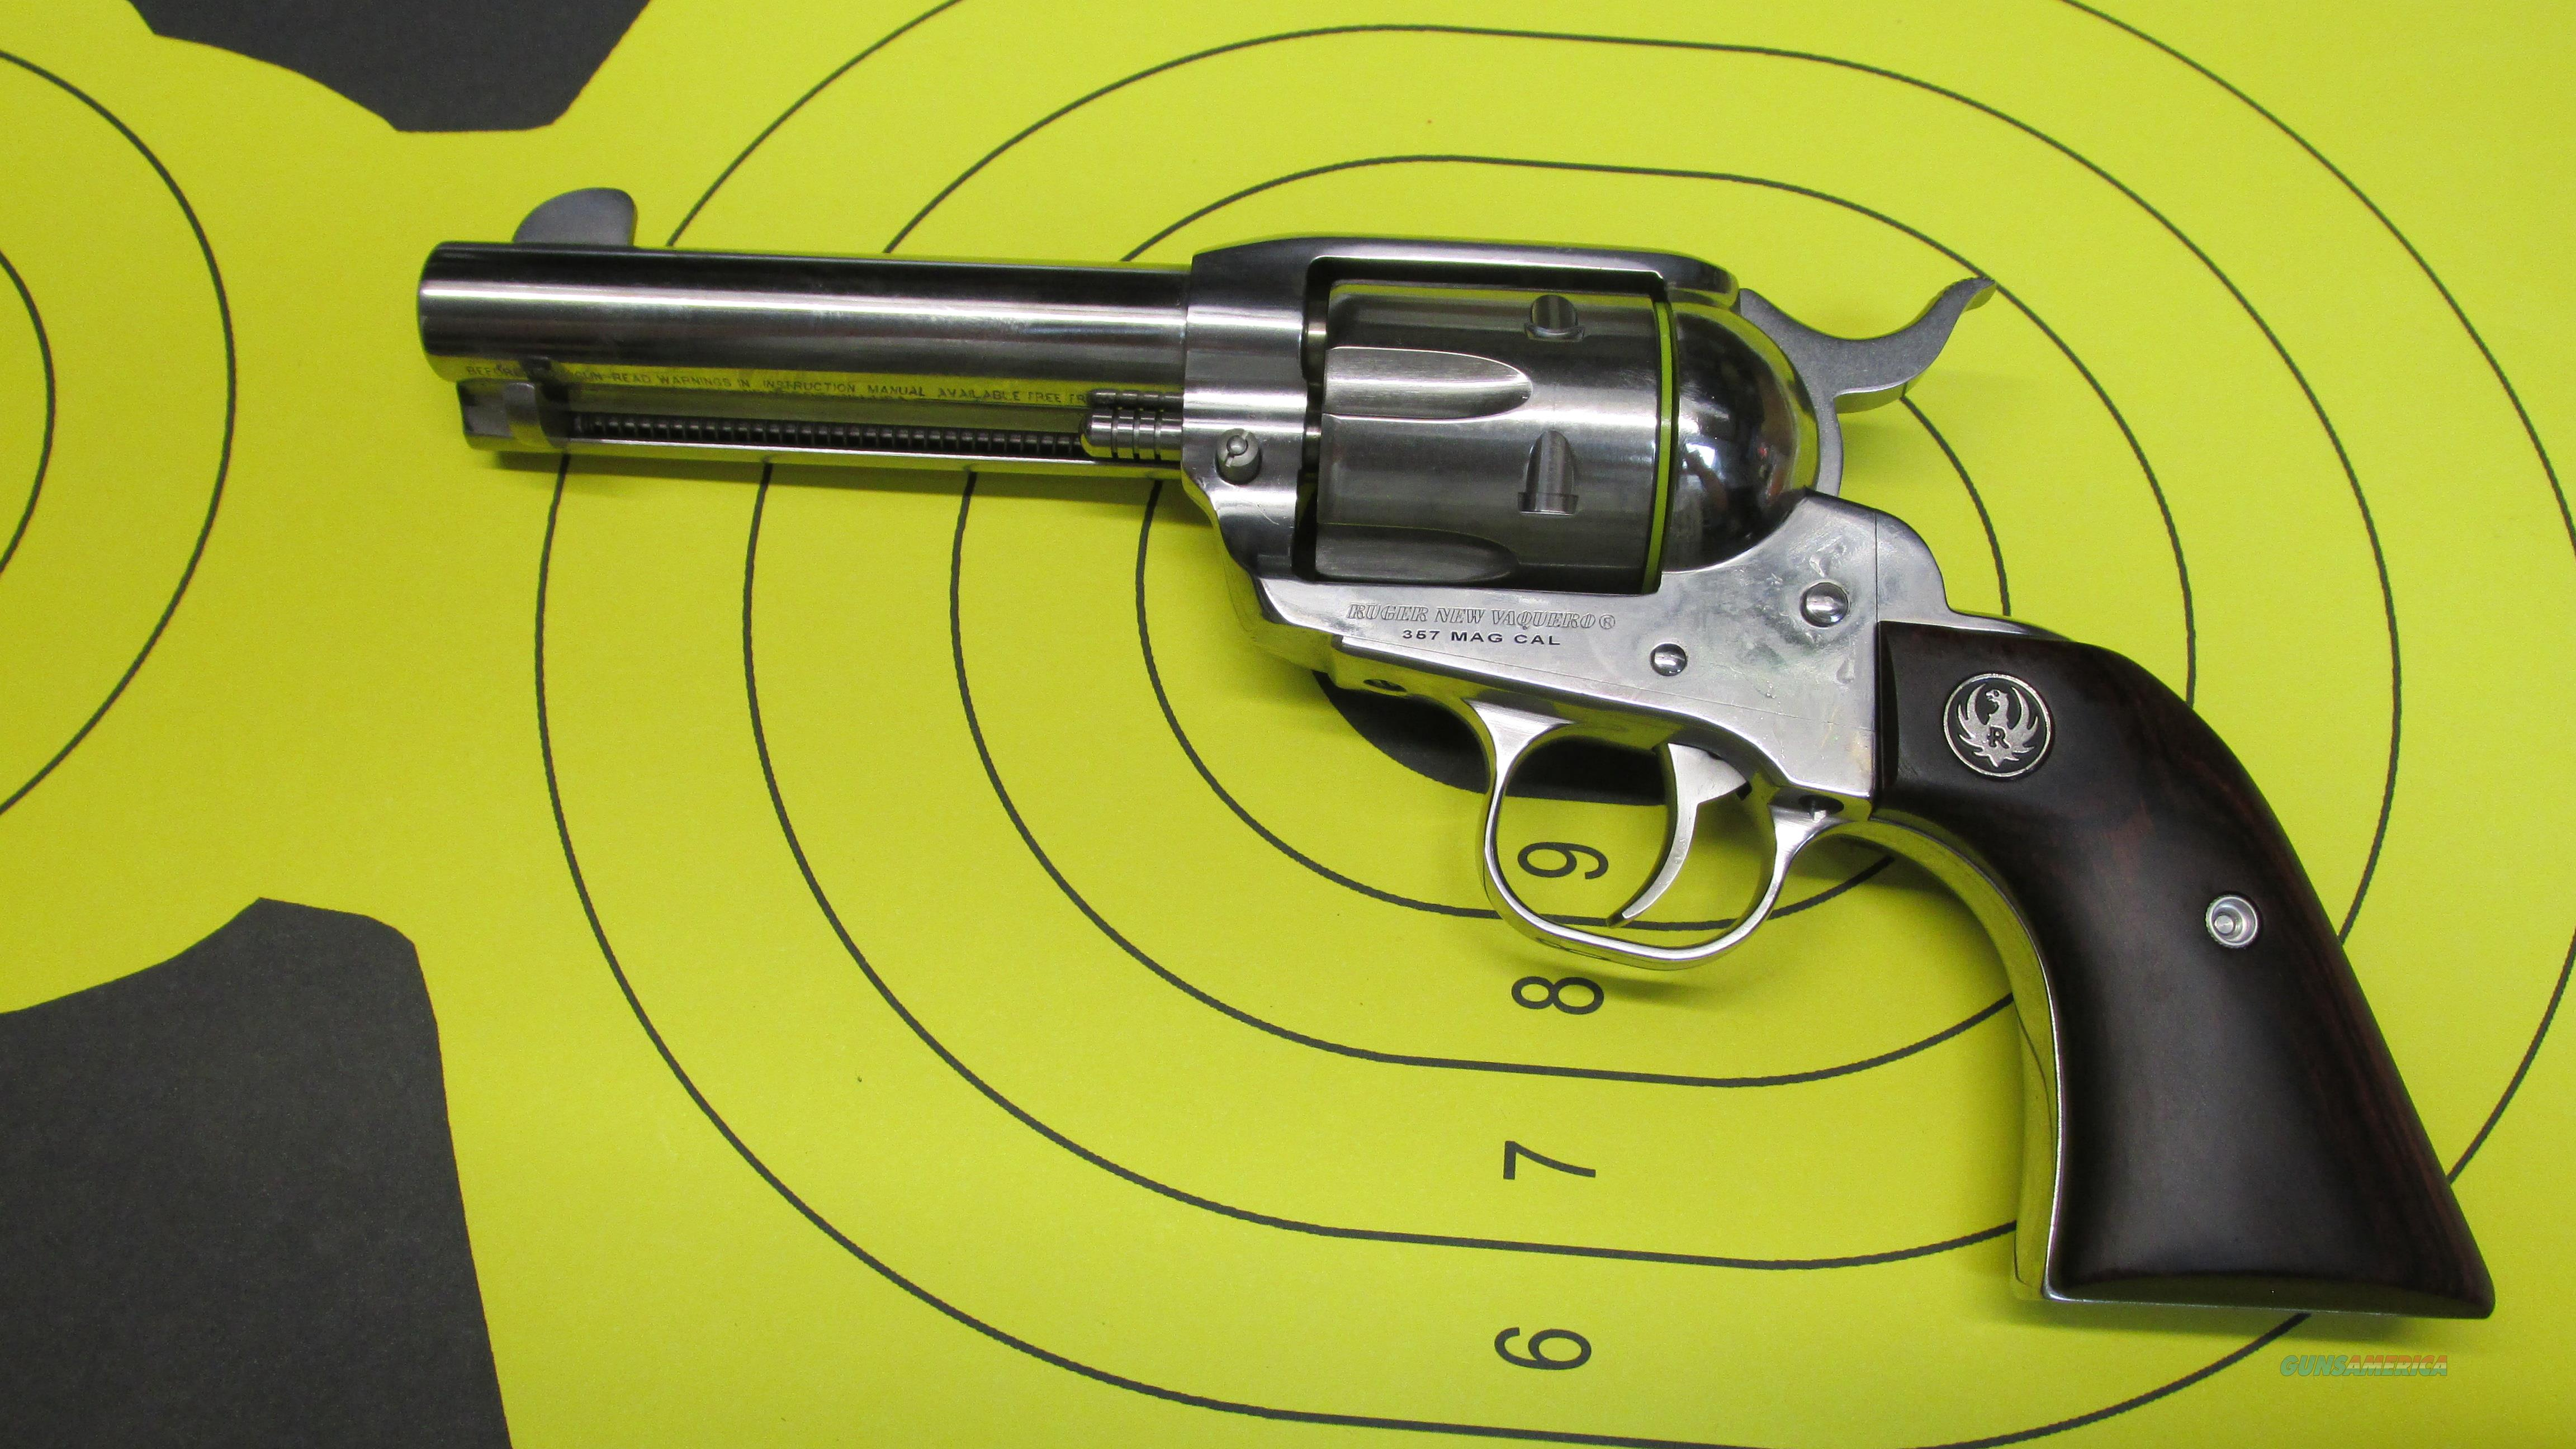 "RUGER NEW VAQUERO .357 MAGNUM 6 SHOT SINGLE ACTION STAINLESS REVOLVER 4.62"" BARREL  Guns > Pistols > Ruger Single Action Revolvers > Cowboy Action"